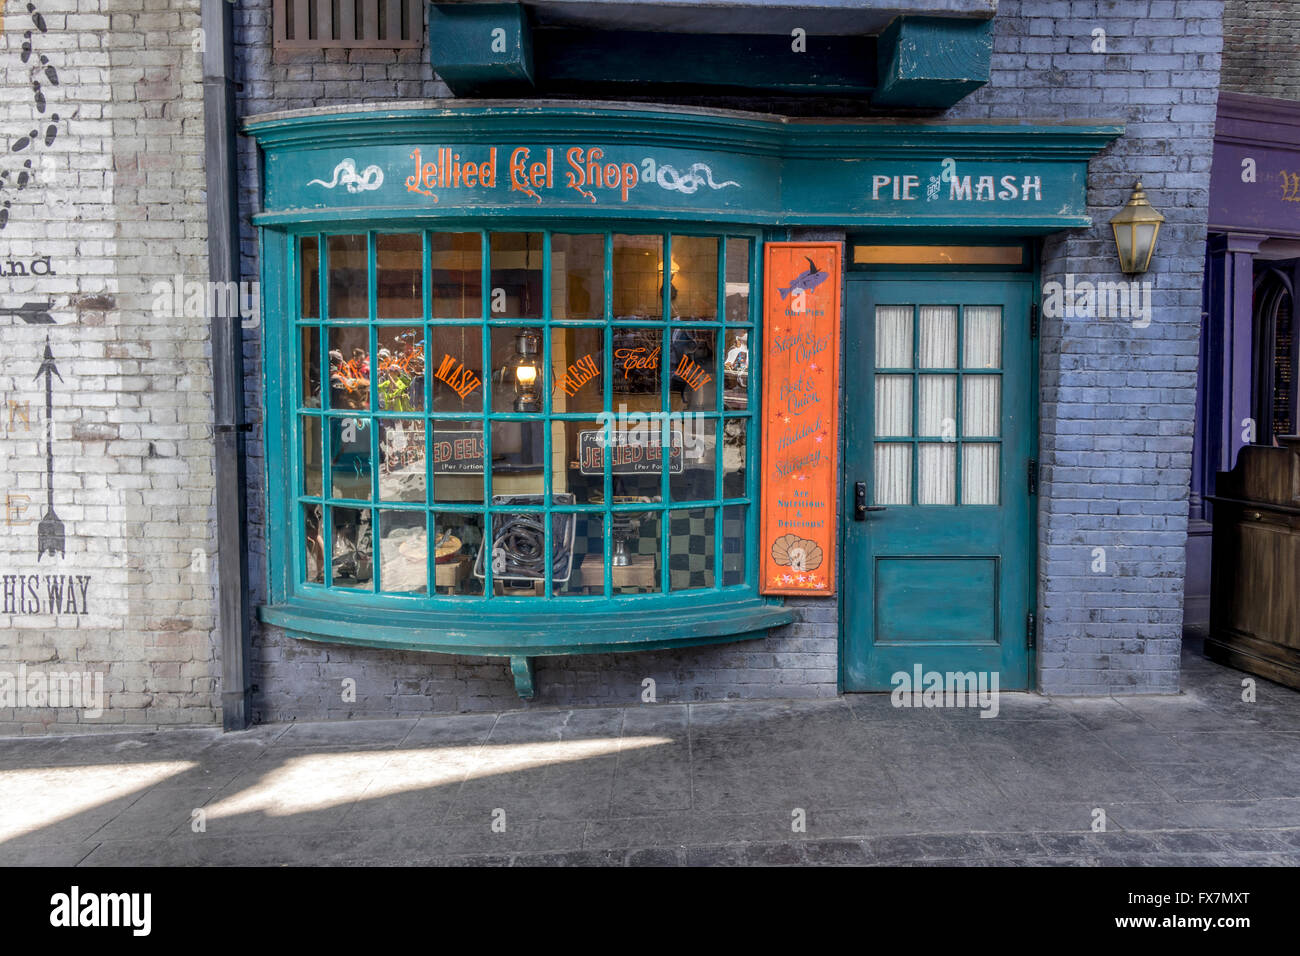 diagon alley orlando stock photos diagon alley orlando stock images alamy. Black Bedroom Furniture Sets. Home Design Ideas